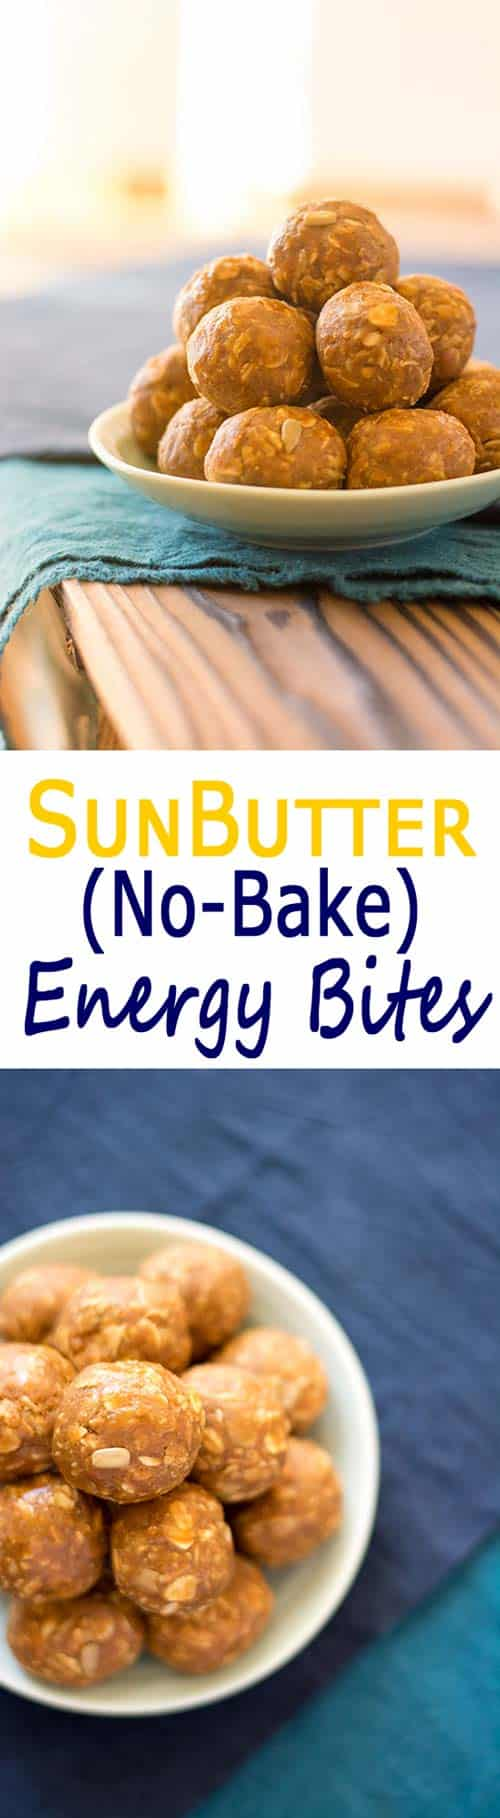 SunButter No Bake Energy Bites: healthy snack balls that taste like oatmeal cookies with no refined sugar! #cleaneating #realfood | Kitchen Gidget